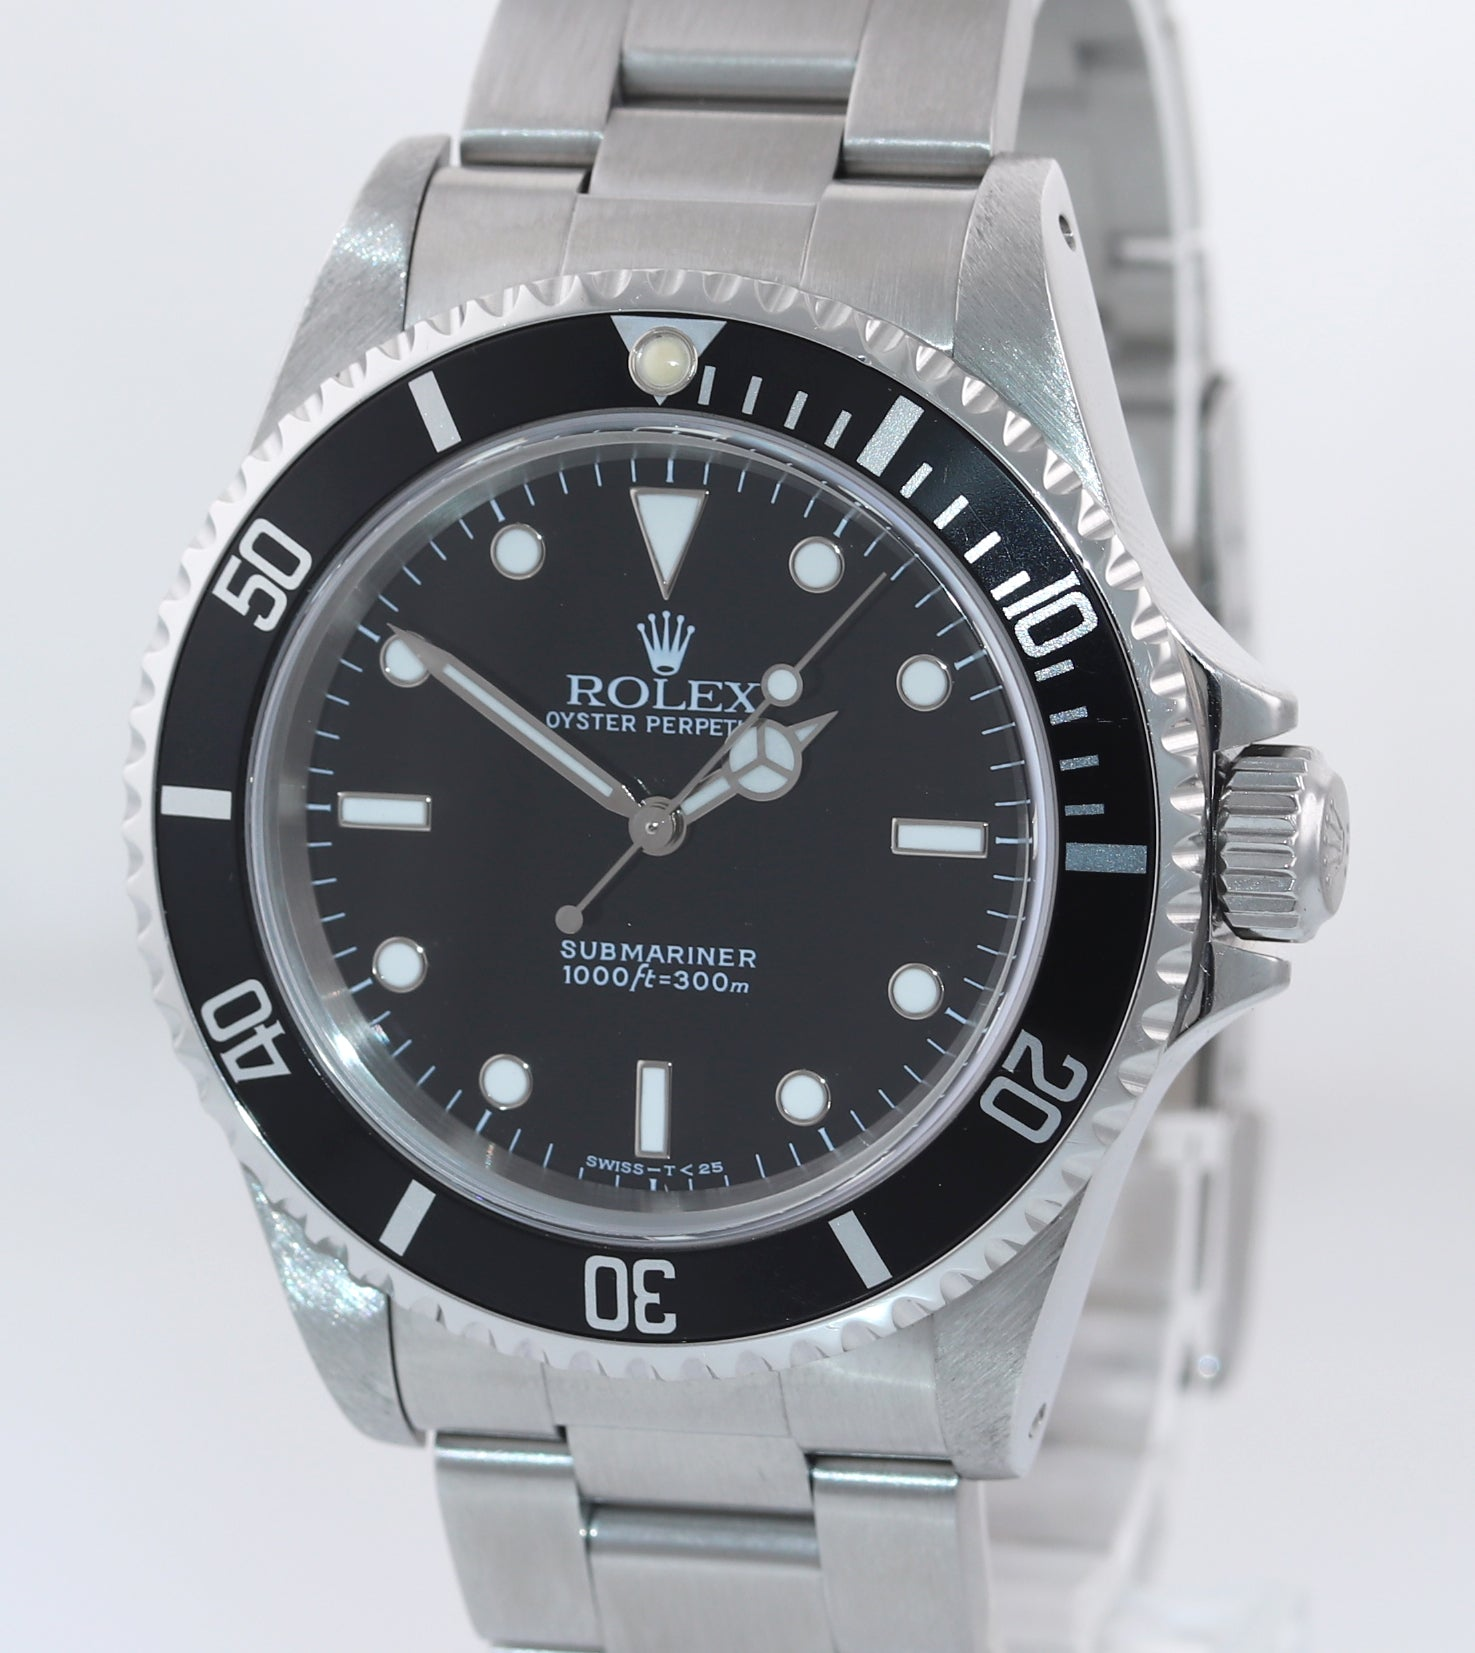 1998 Rolex Submariner No-Date 2 line dial 14060 Steel Black 40mm Watch Box